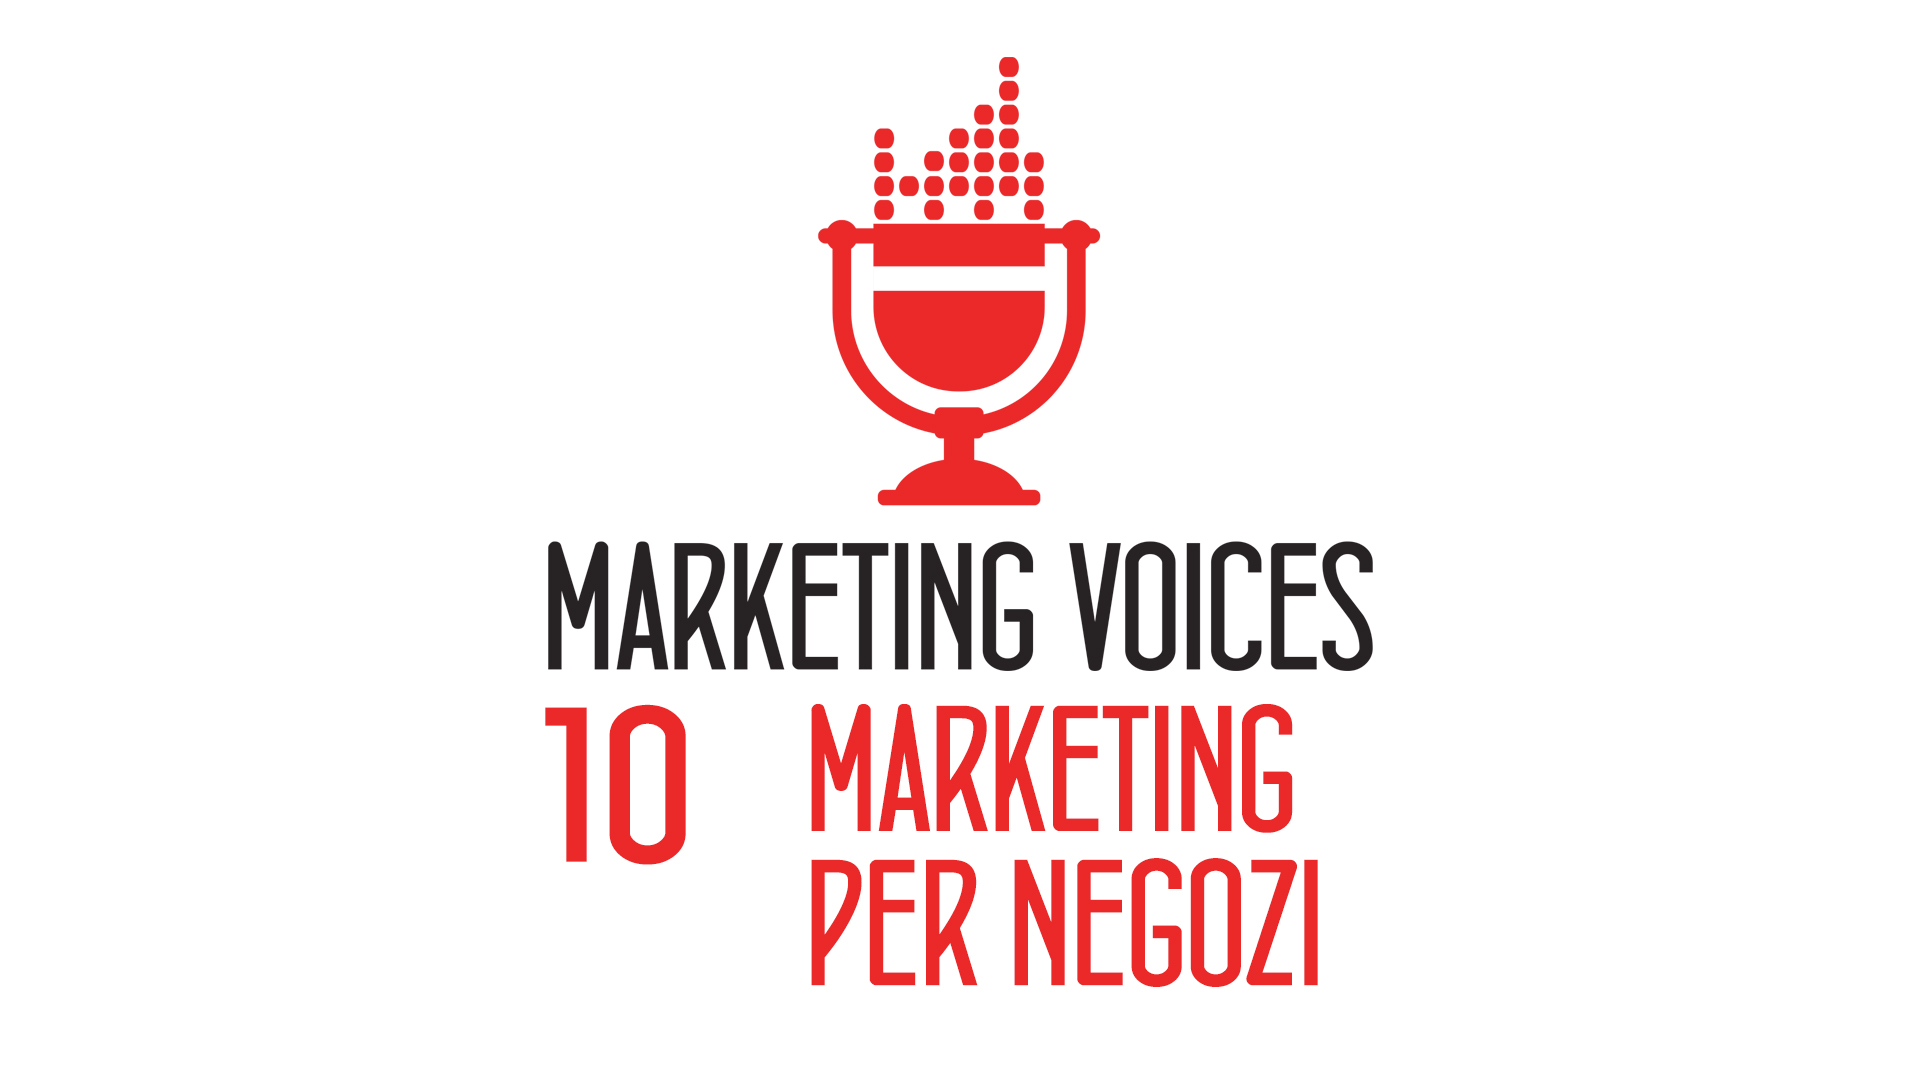 marketing per negozi